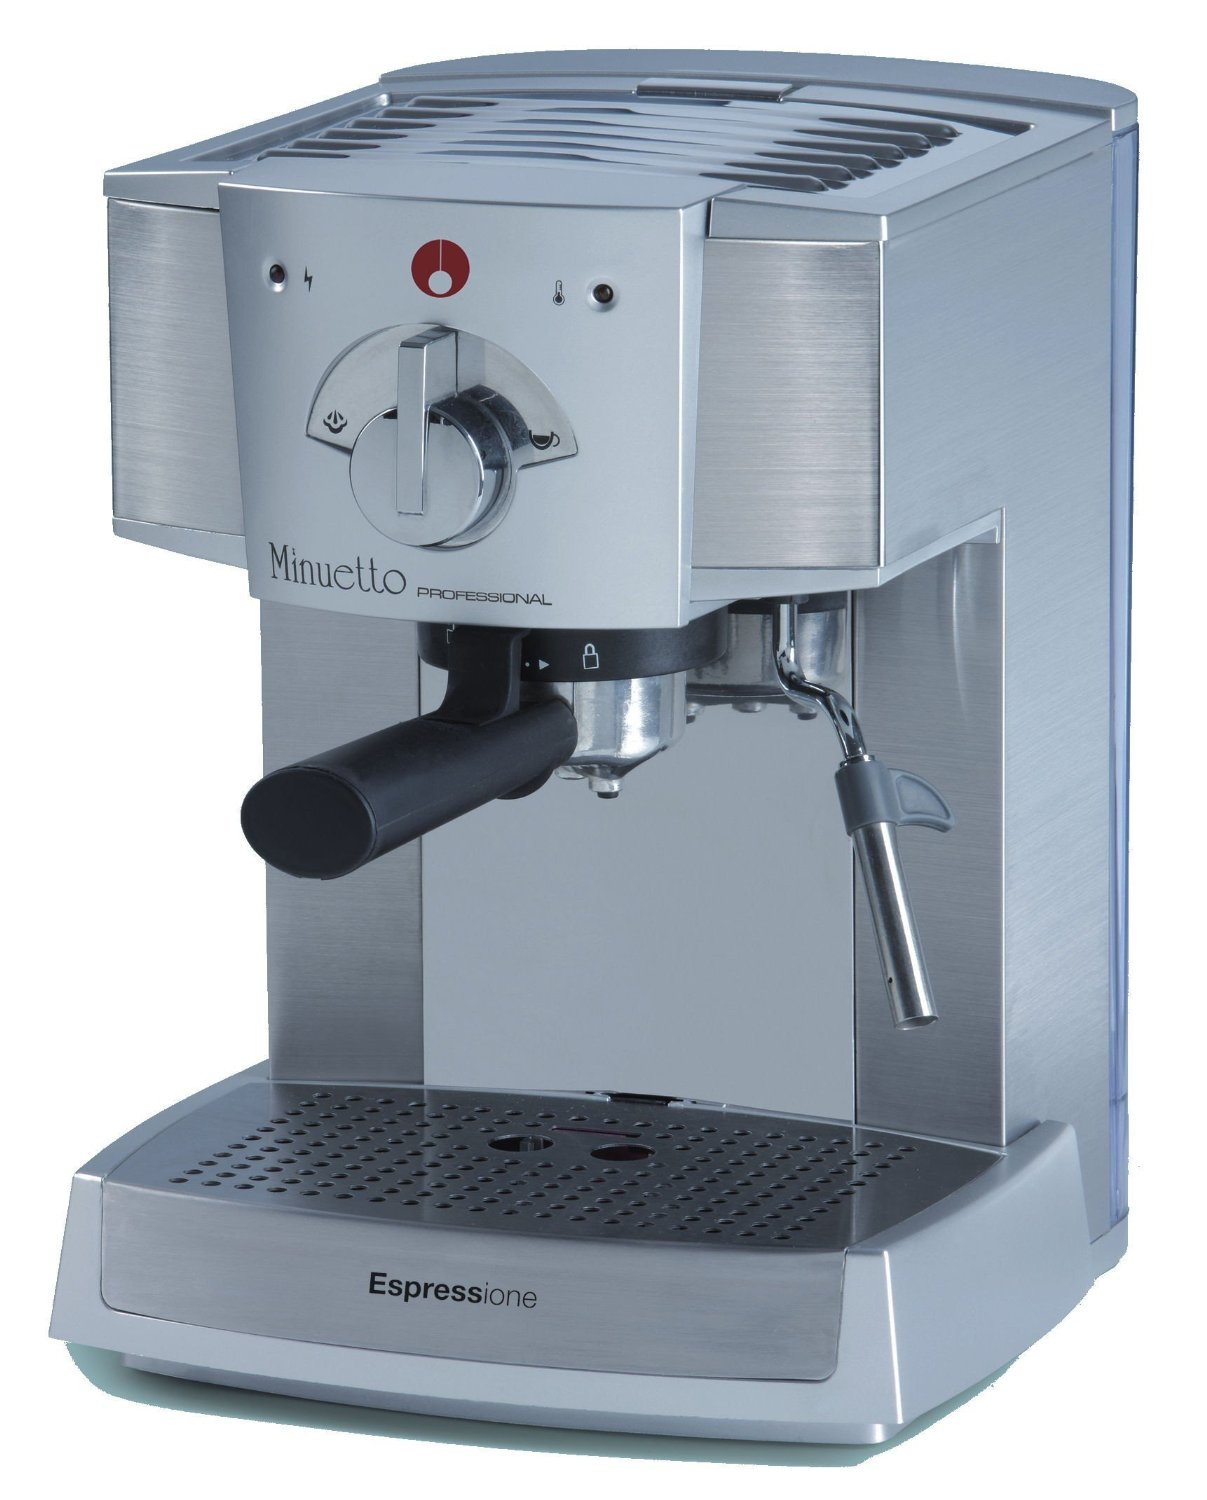 espressione caf minuetto professional espresso machine review. Black Bedroom Furniture Sets. Home Design Ideas